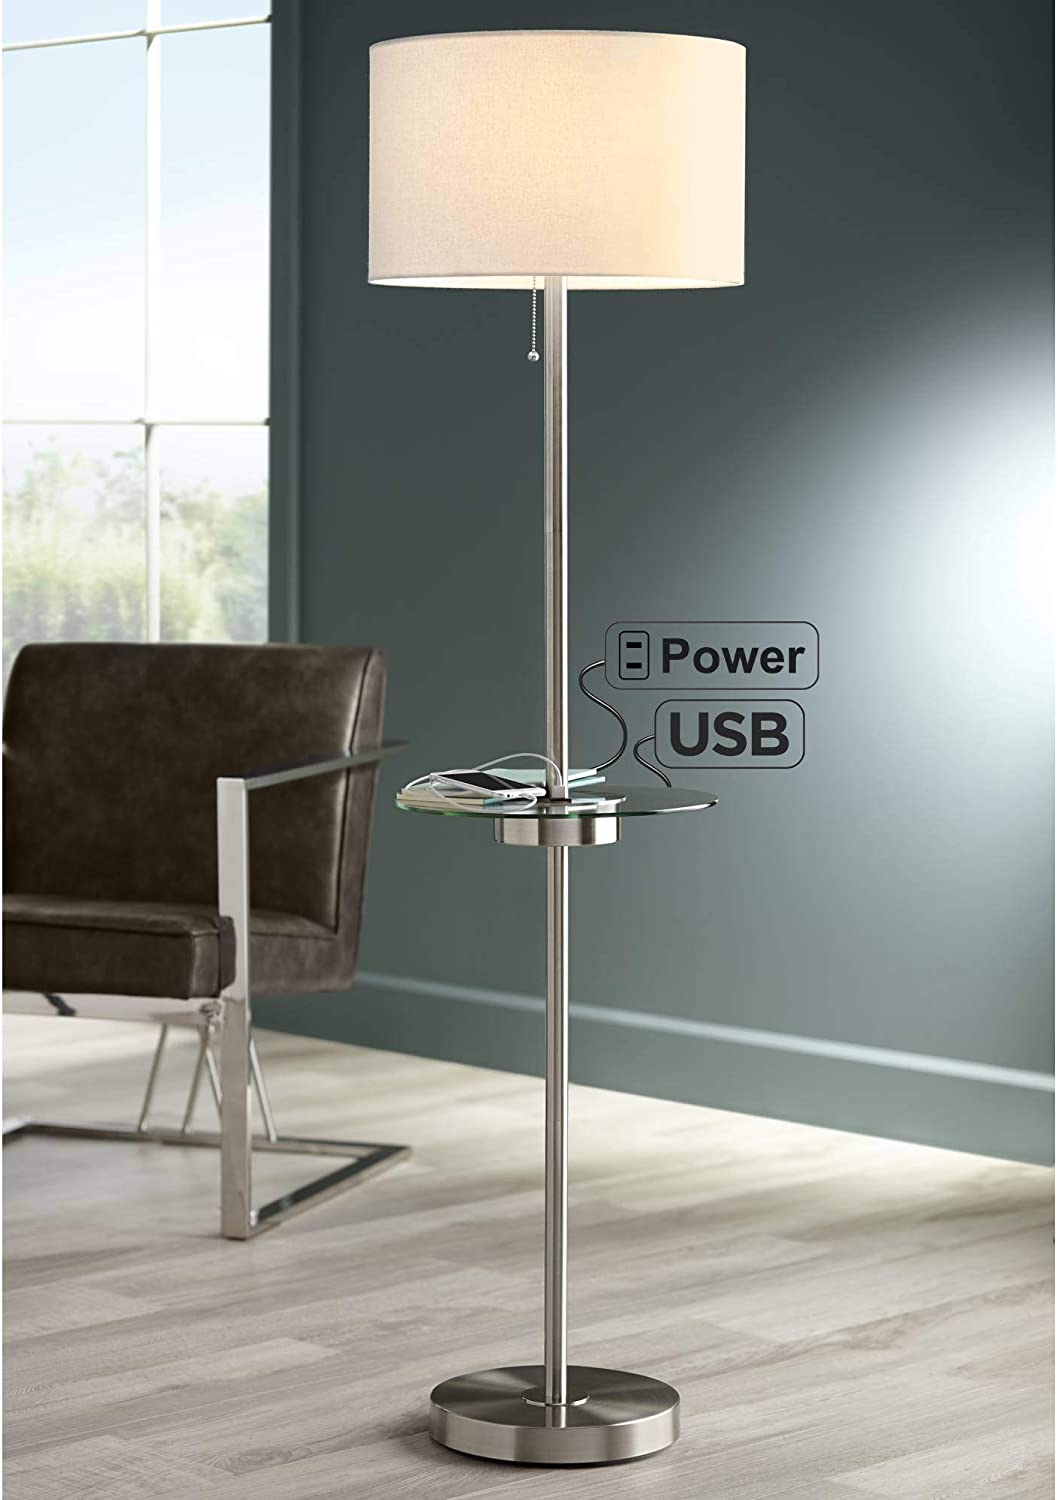 Table With Floor Lamp Details @house2homegoods.net